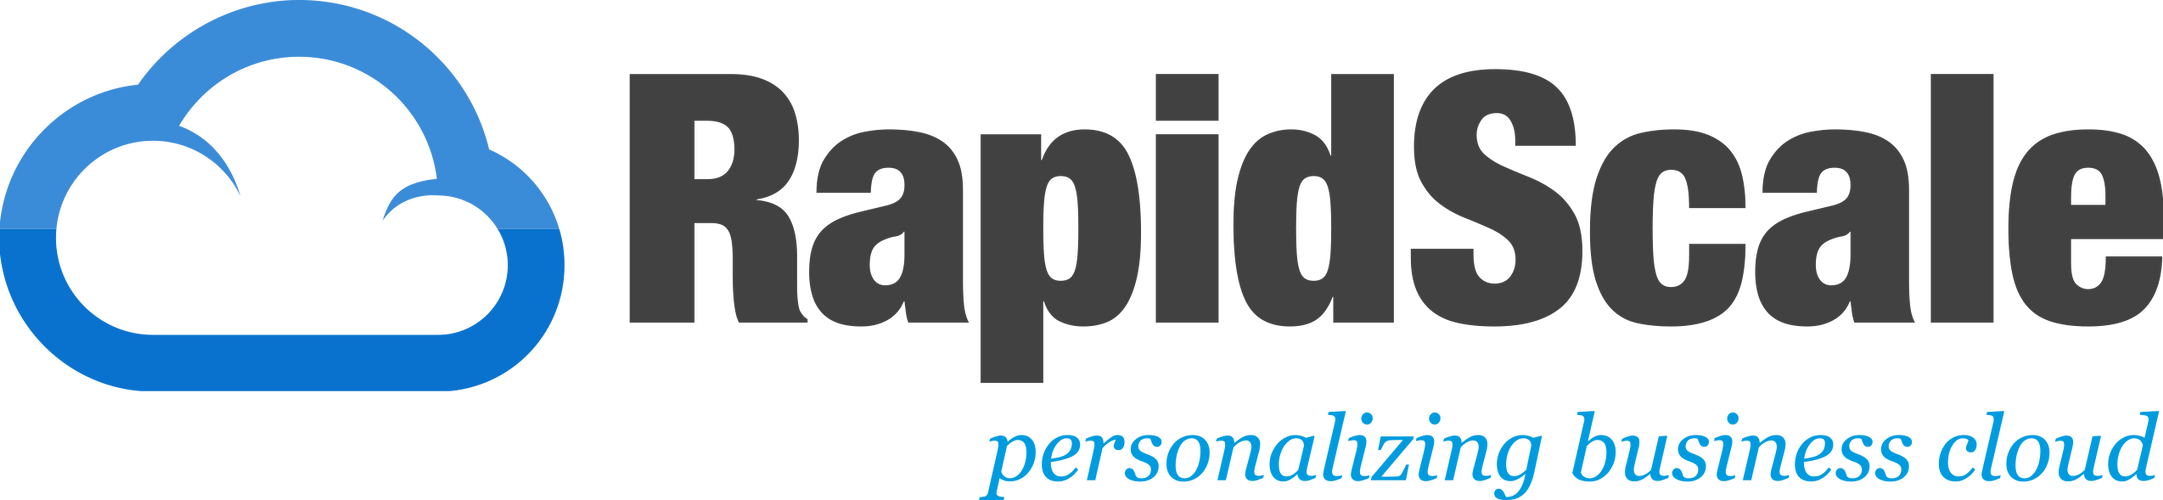 RapidScale-logo-with-tag-line.png